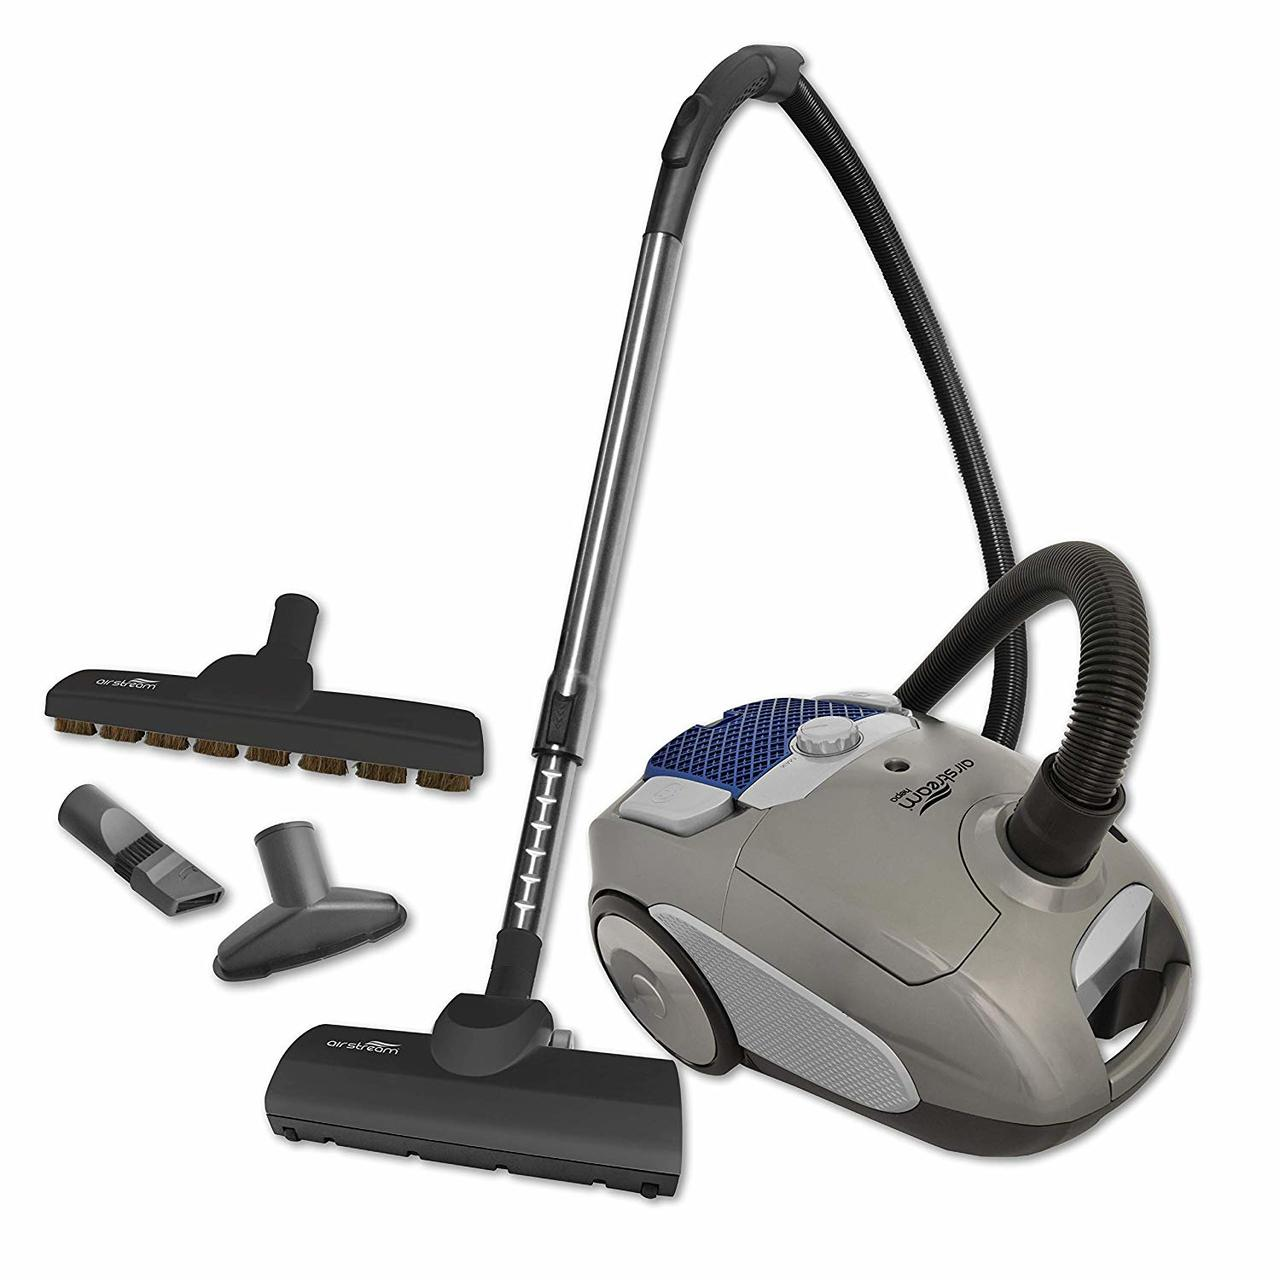 Airstream AS200 Corded Lightweight Canister Vacuum with Accessories - Super Vacs